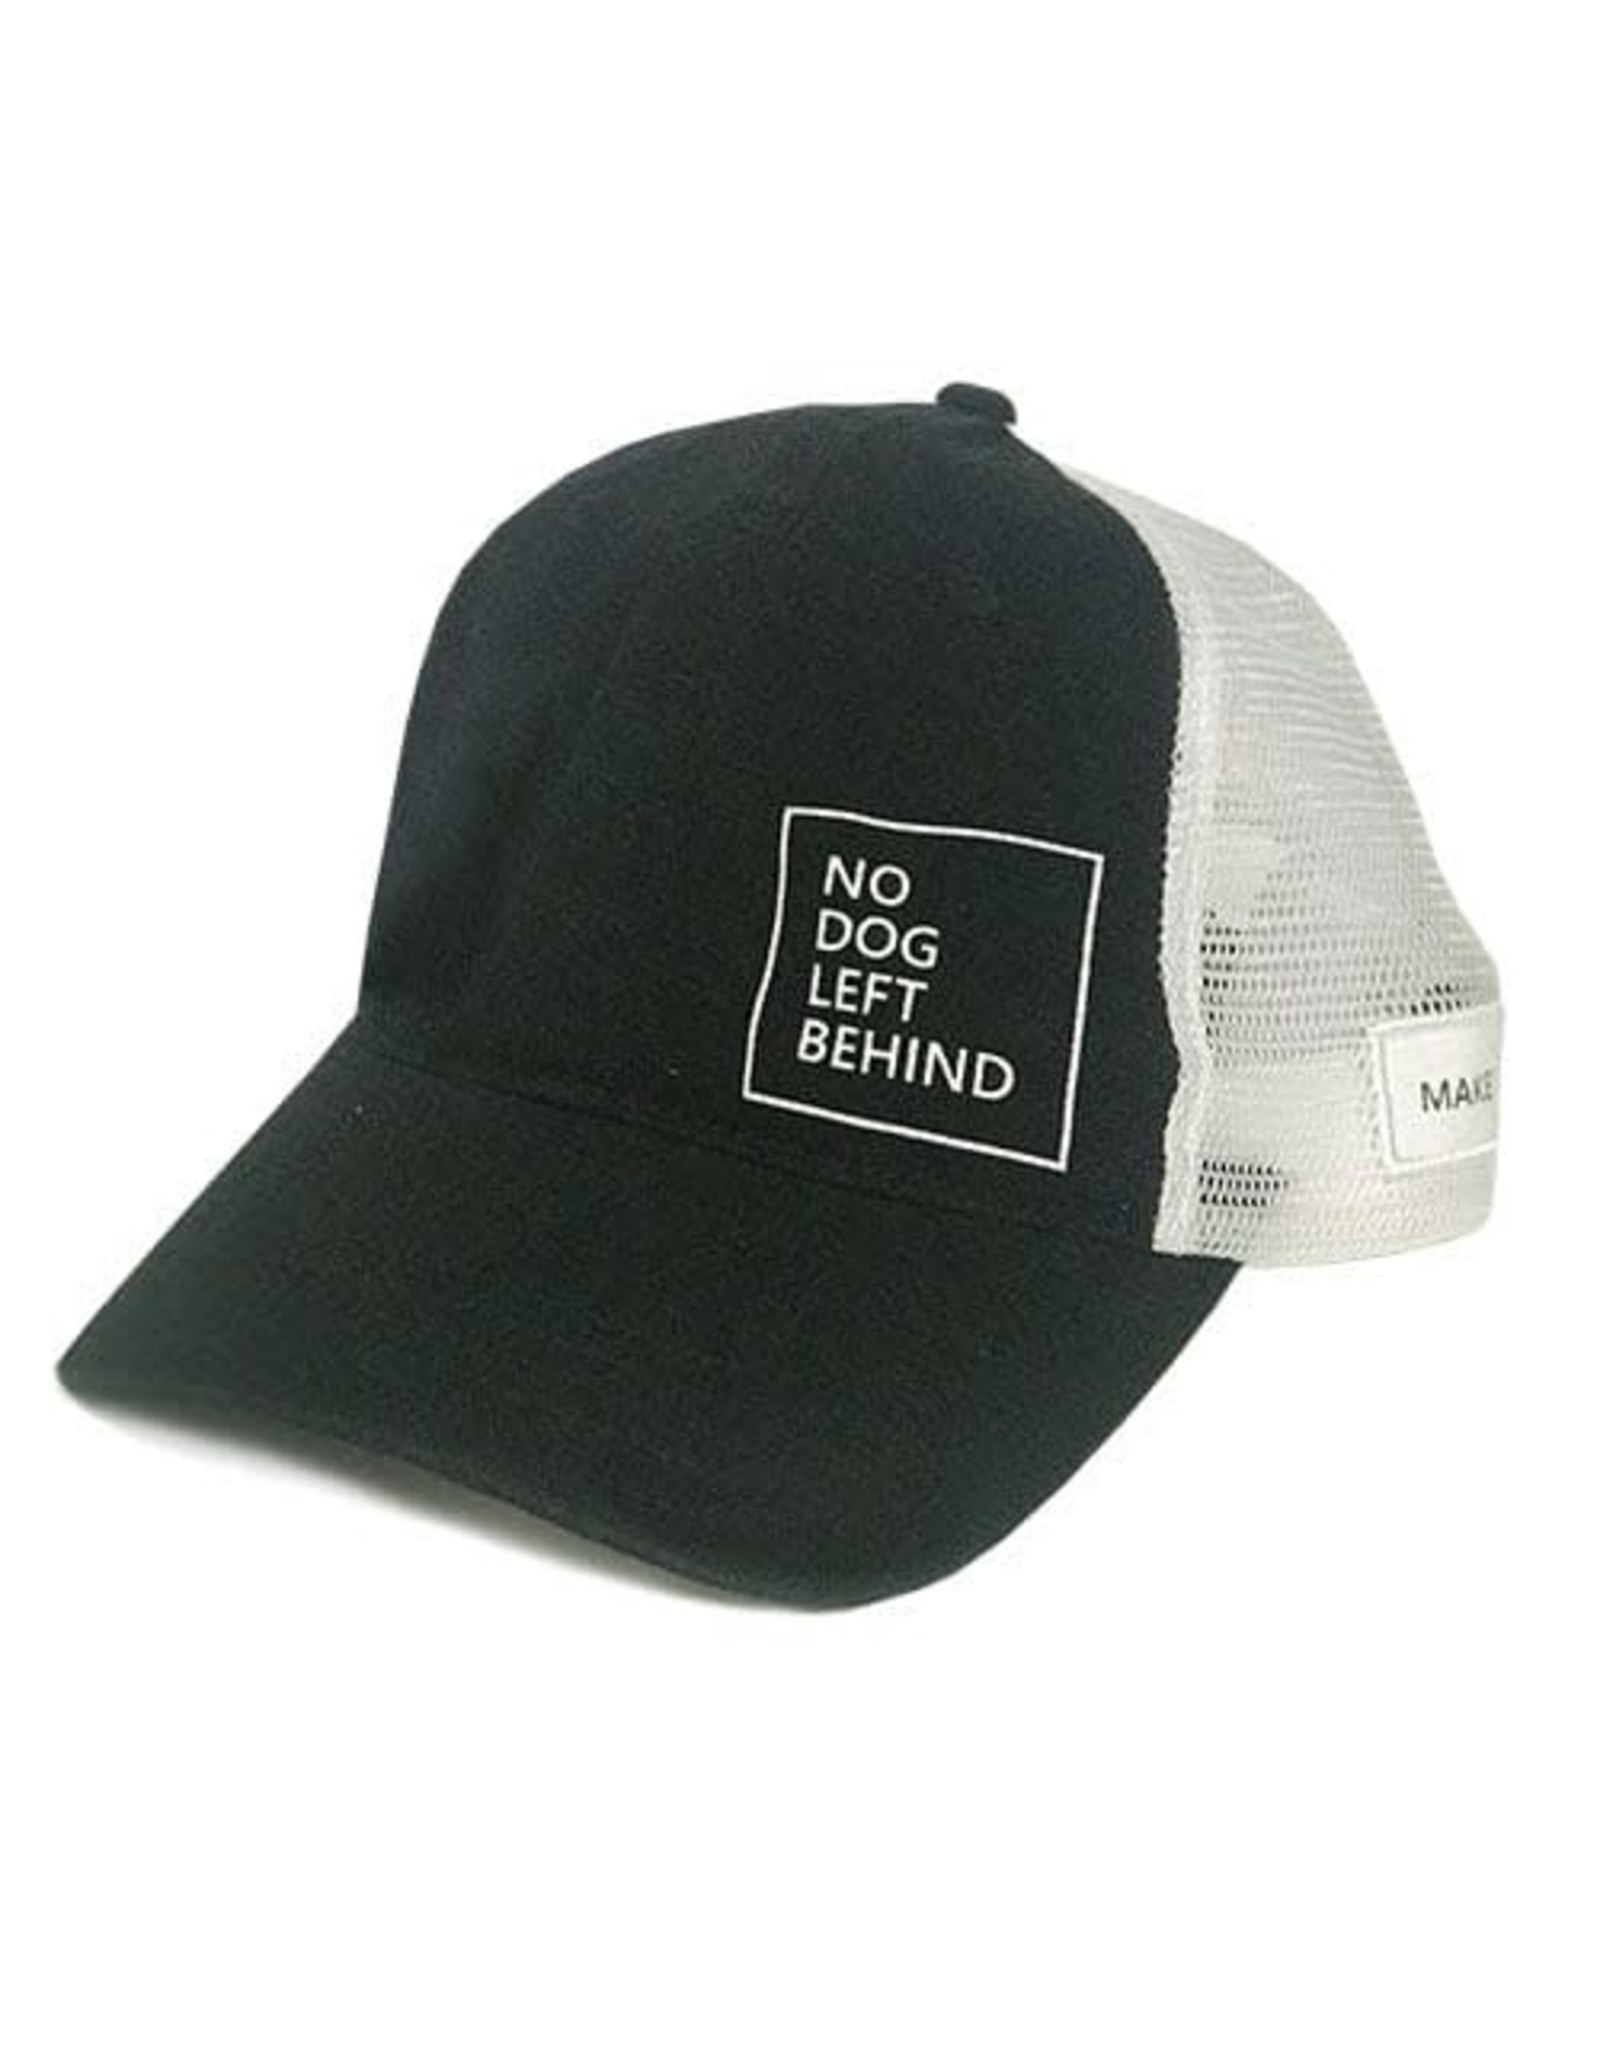 Dog Is Good Cap:  No Dog Left Behind